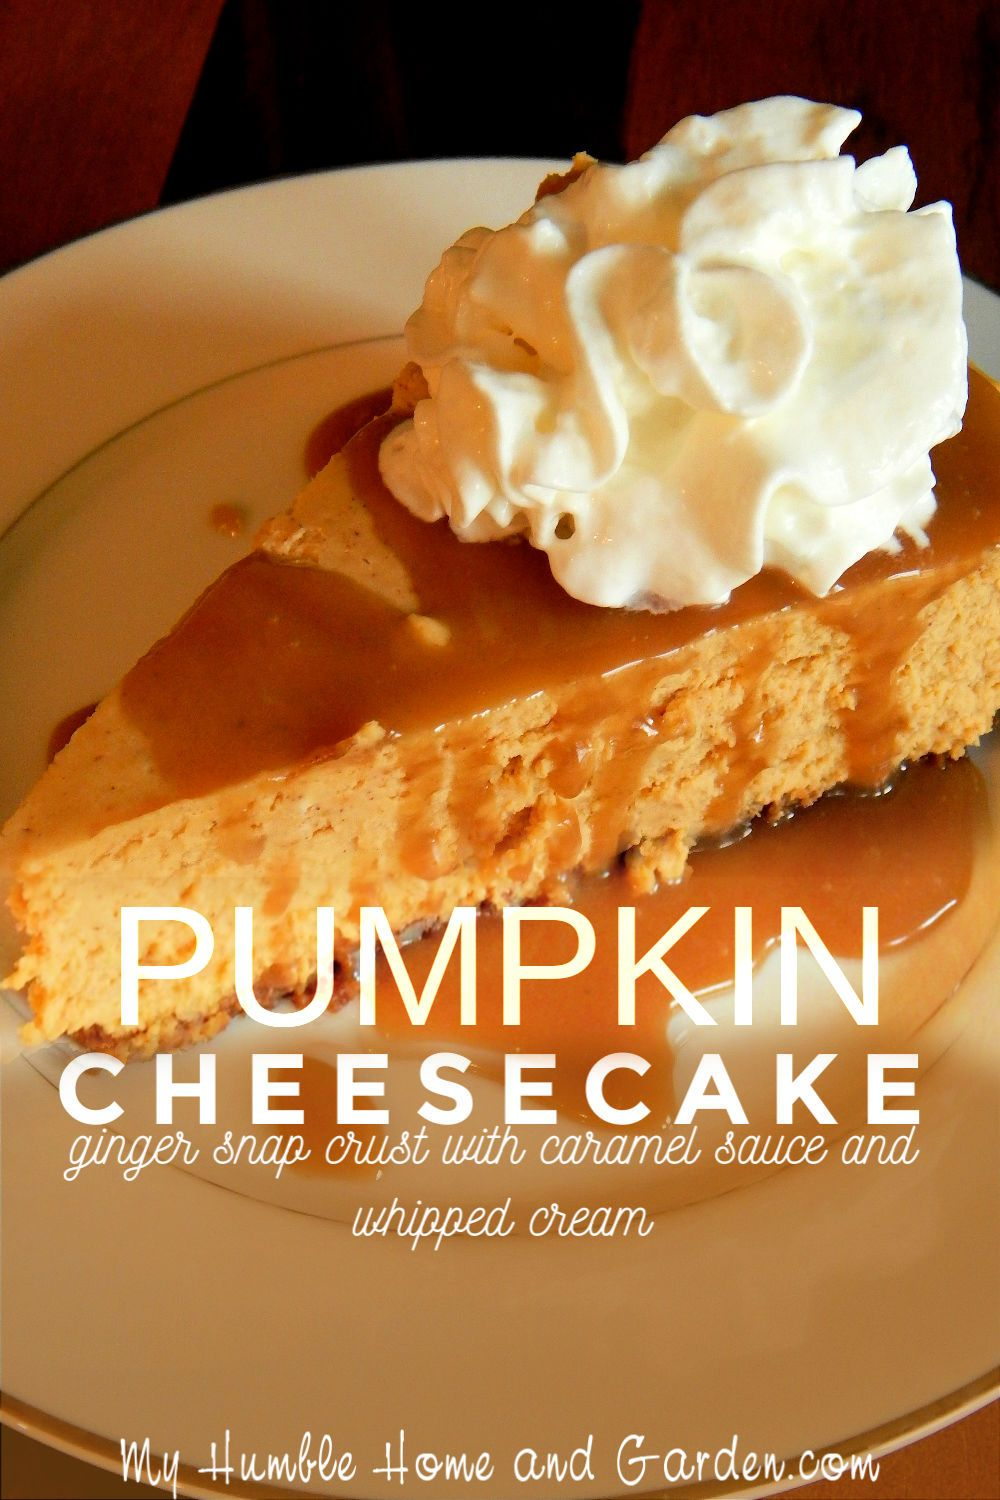 Best Pumpkin Cheesecake Ginger Snap Crust And Caramel Sauce My Humble Home And Garden Recipe Pumpkin Cheesecake Savoury Cake Pumpkin Cheesecake Recipes